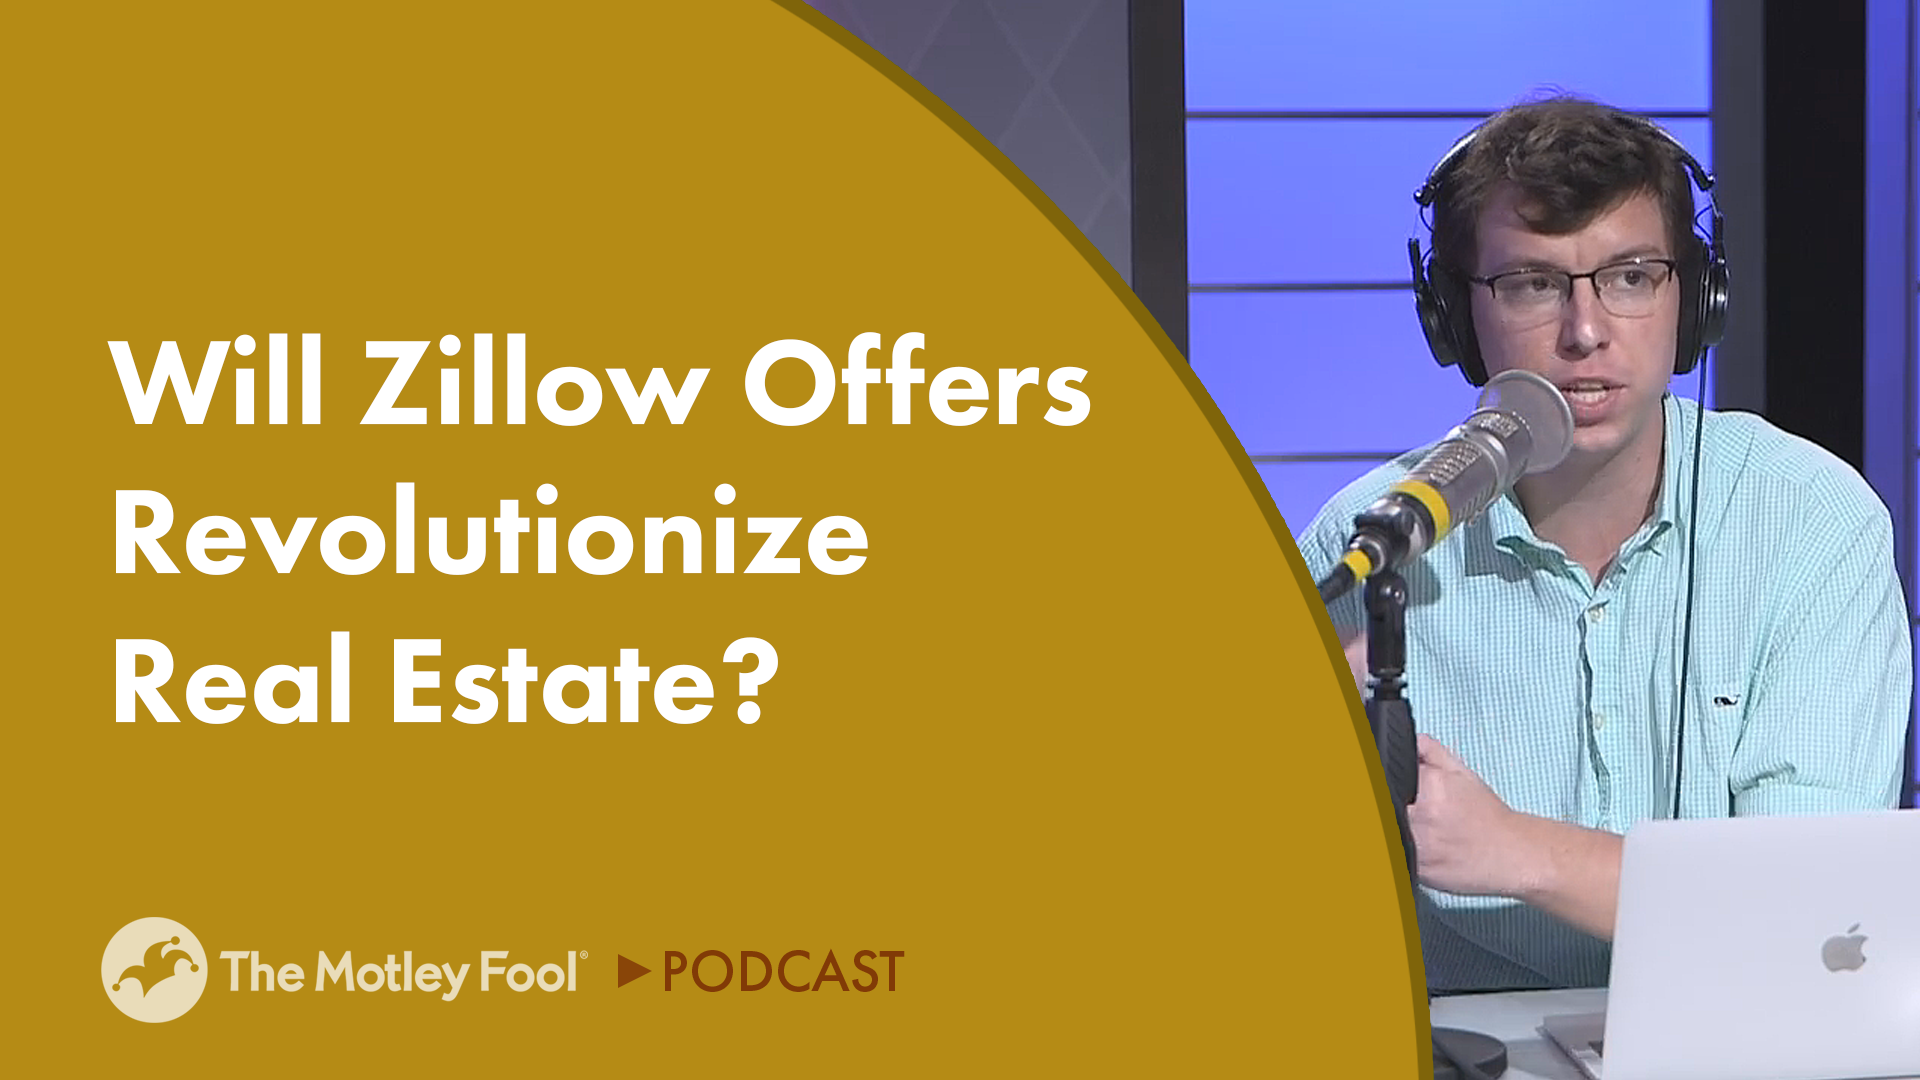 Will Zillow Offers Revolutionize Real Estate?